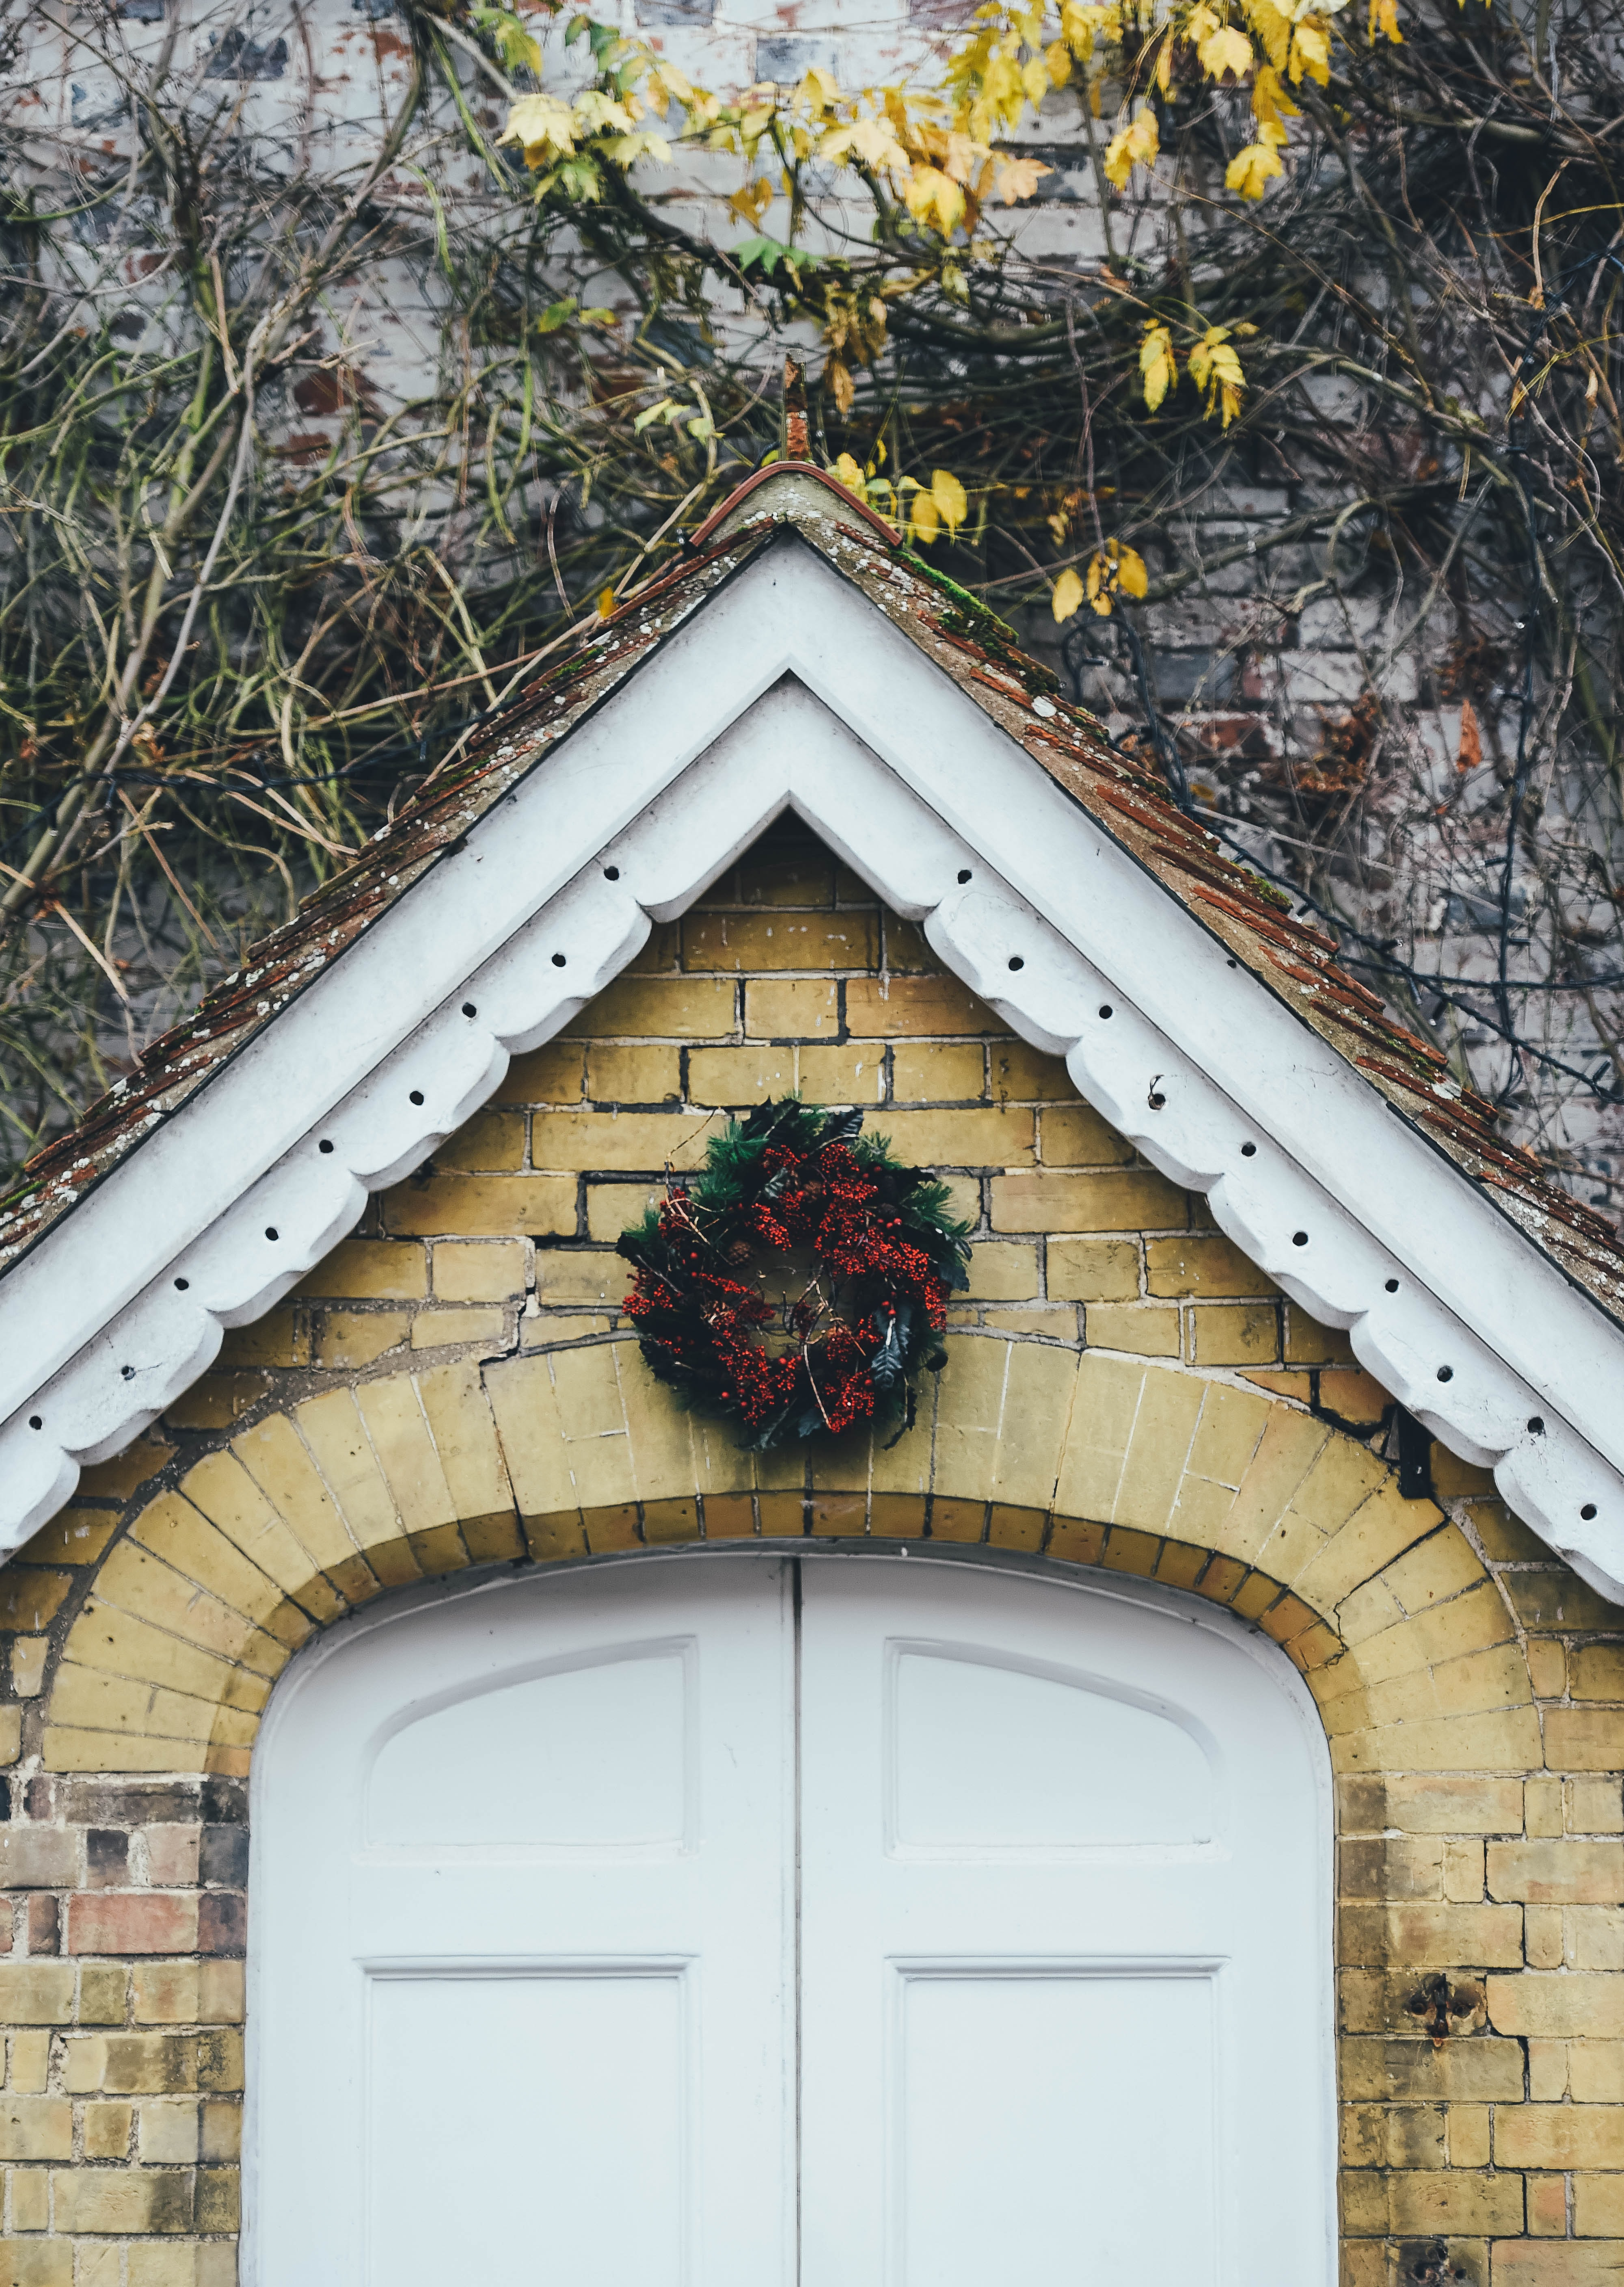 A shed with a wreath.